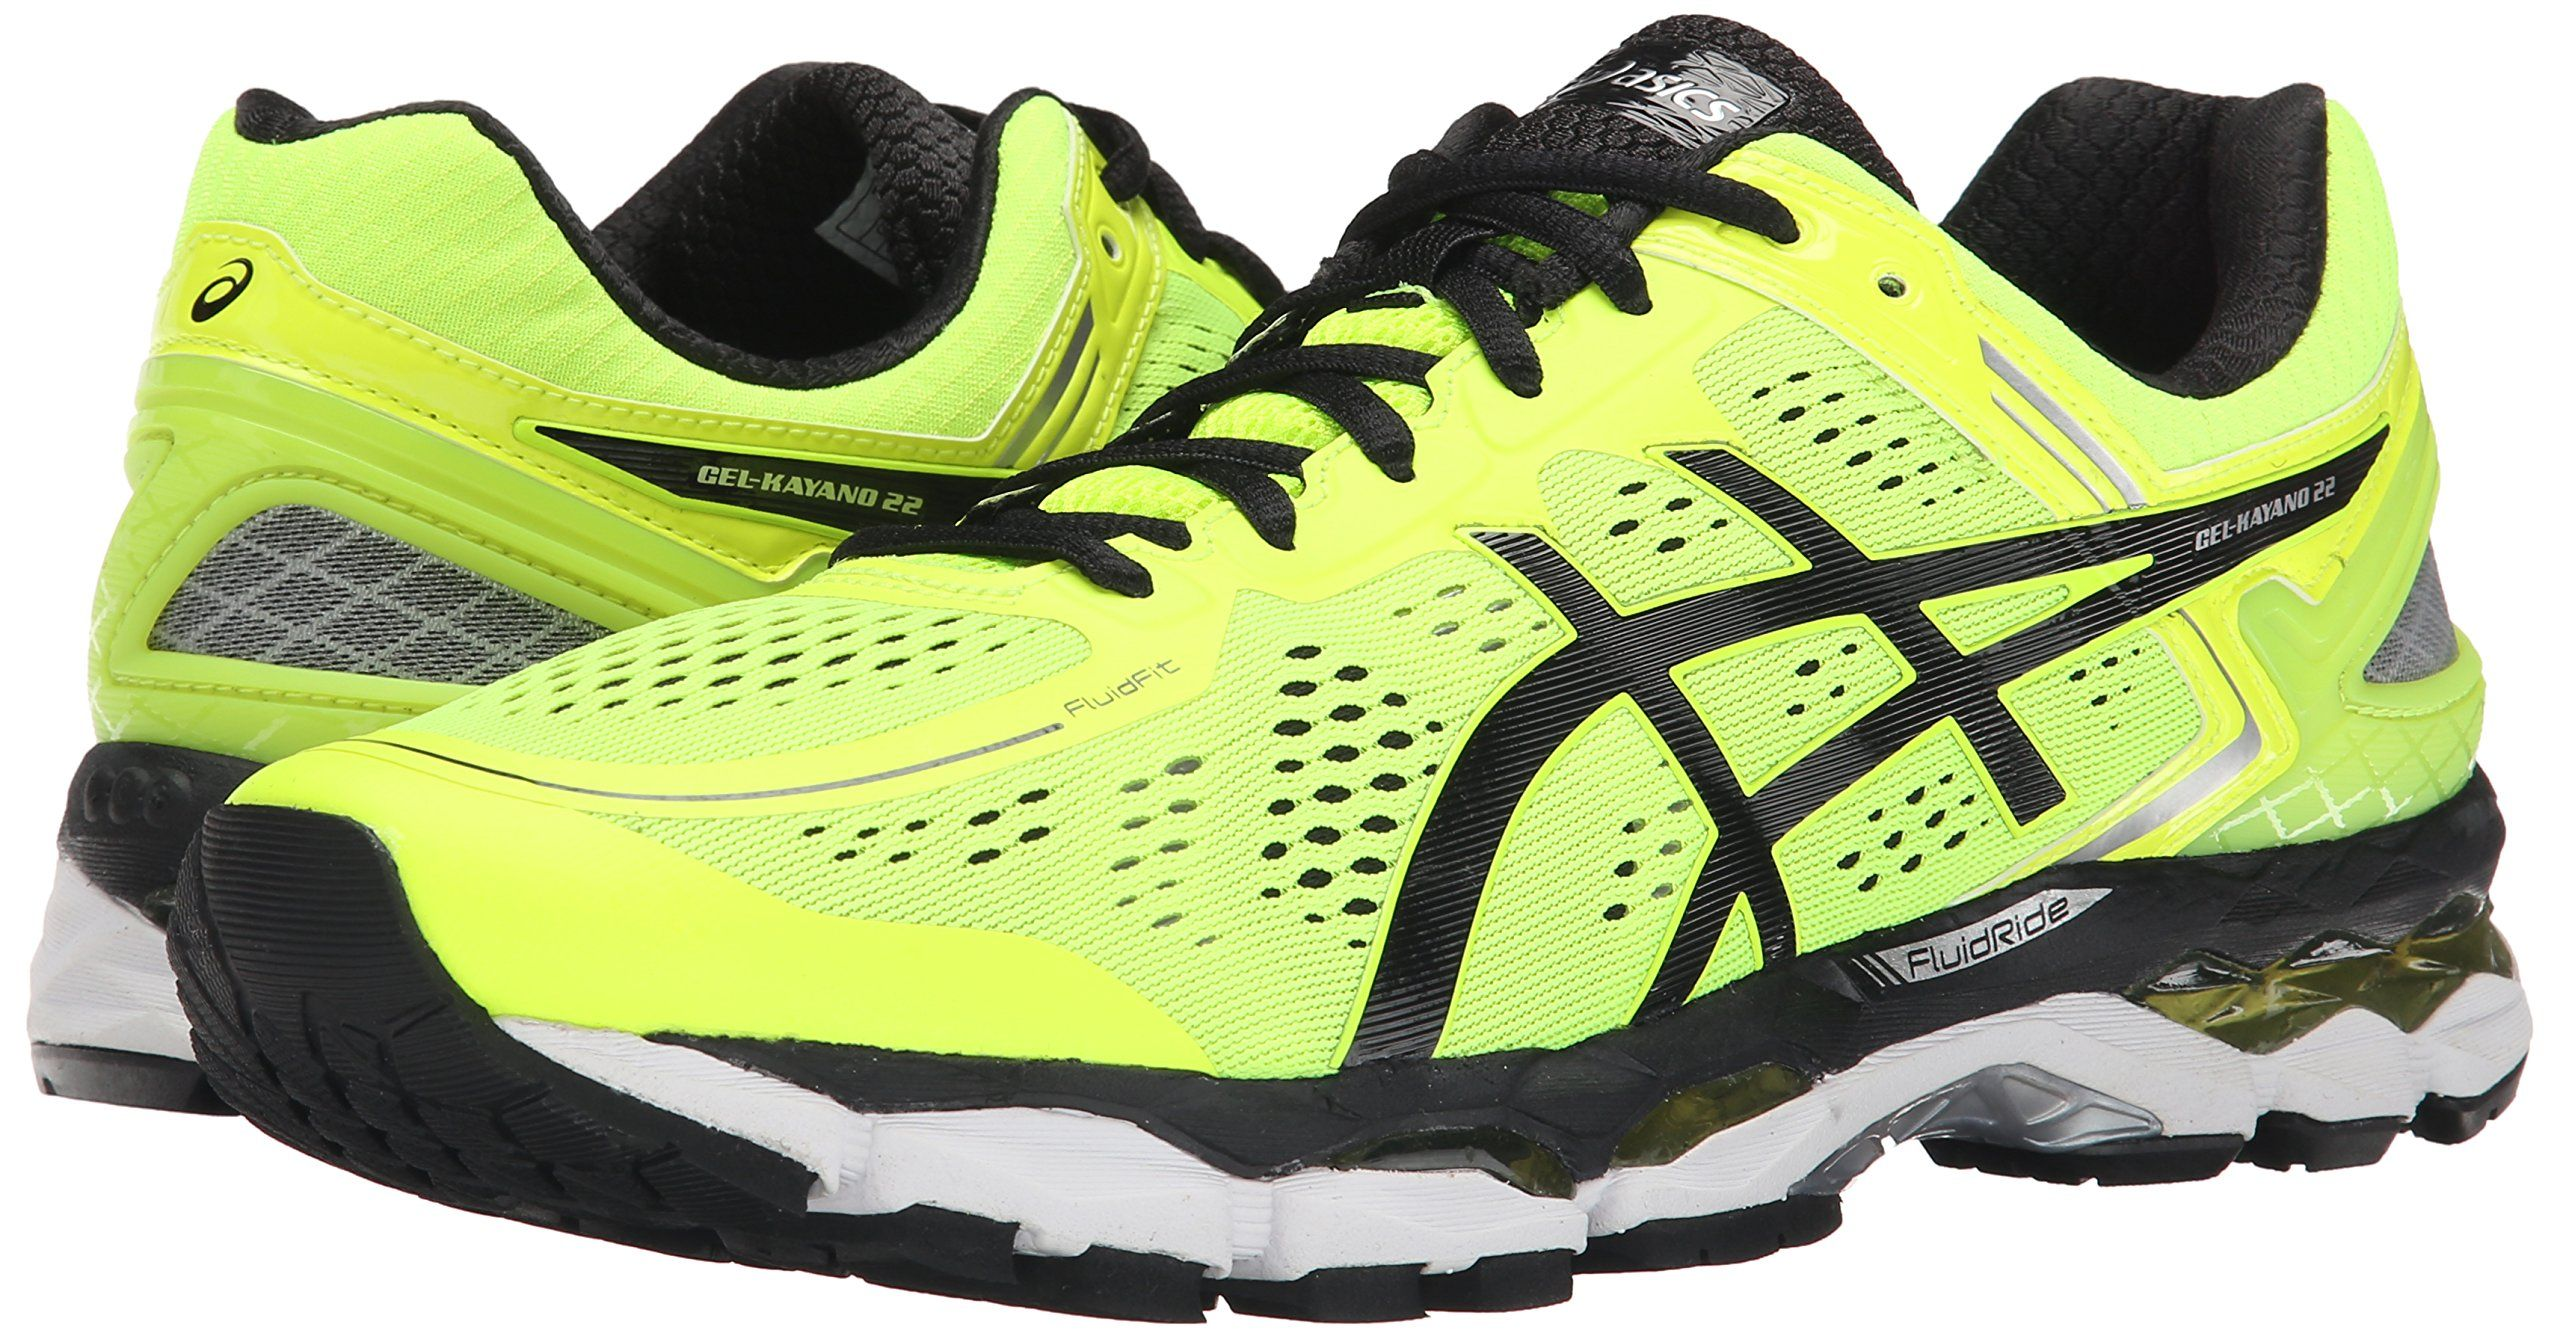 Amazon.com: ASICS Men's GEL-Kayano 22 Running Shoe: Clothing · Gel Kayano  22Yellow BlackBlack SilverRunning ...